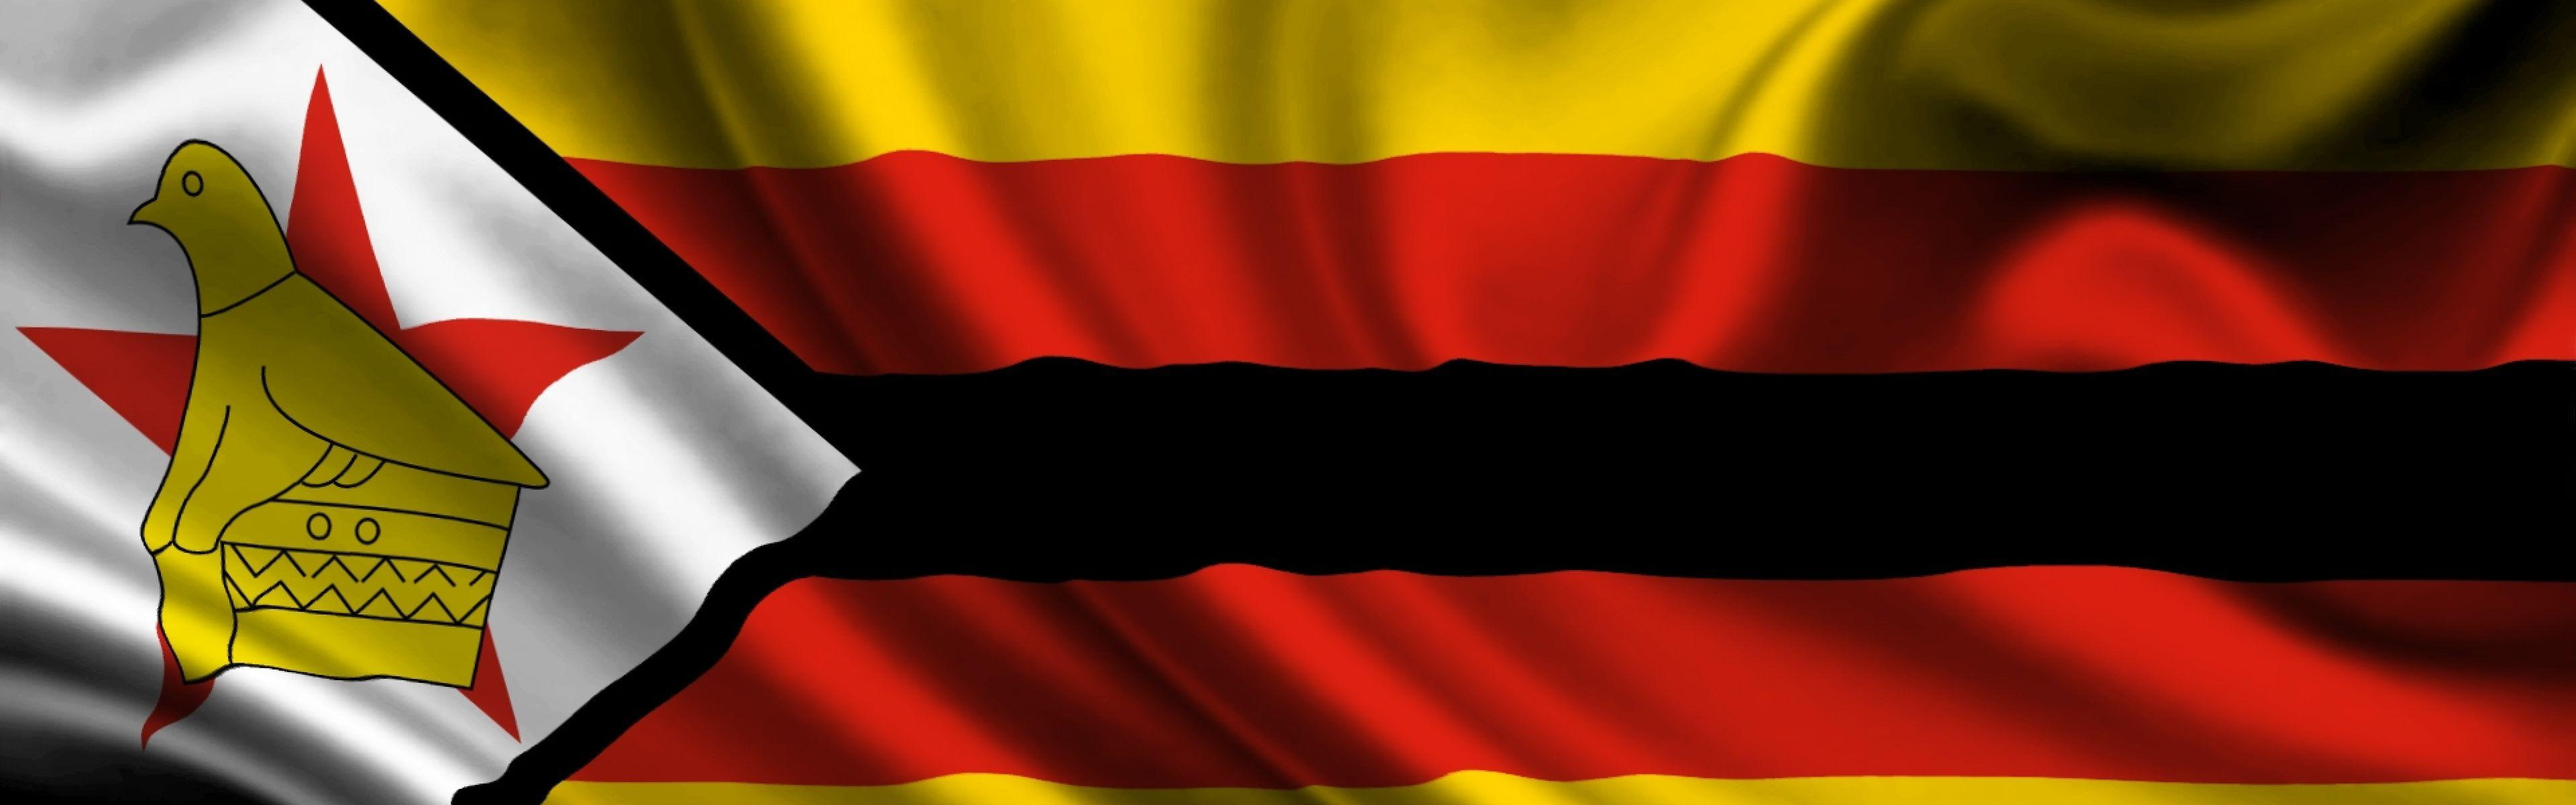 Download Wallpaper 3840x1200 Zimbabwe, atlas, Flag, Cloth, Silk ...